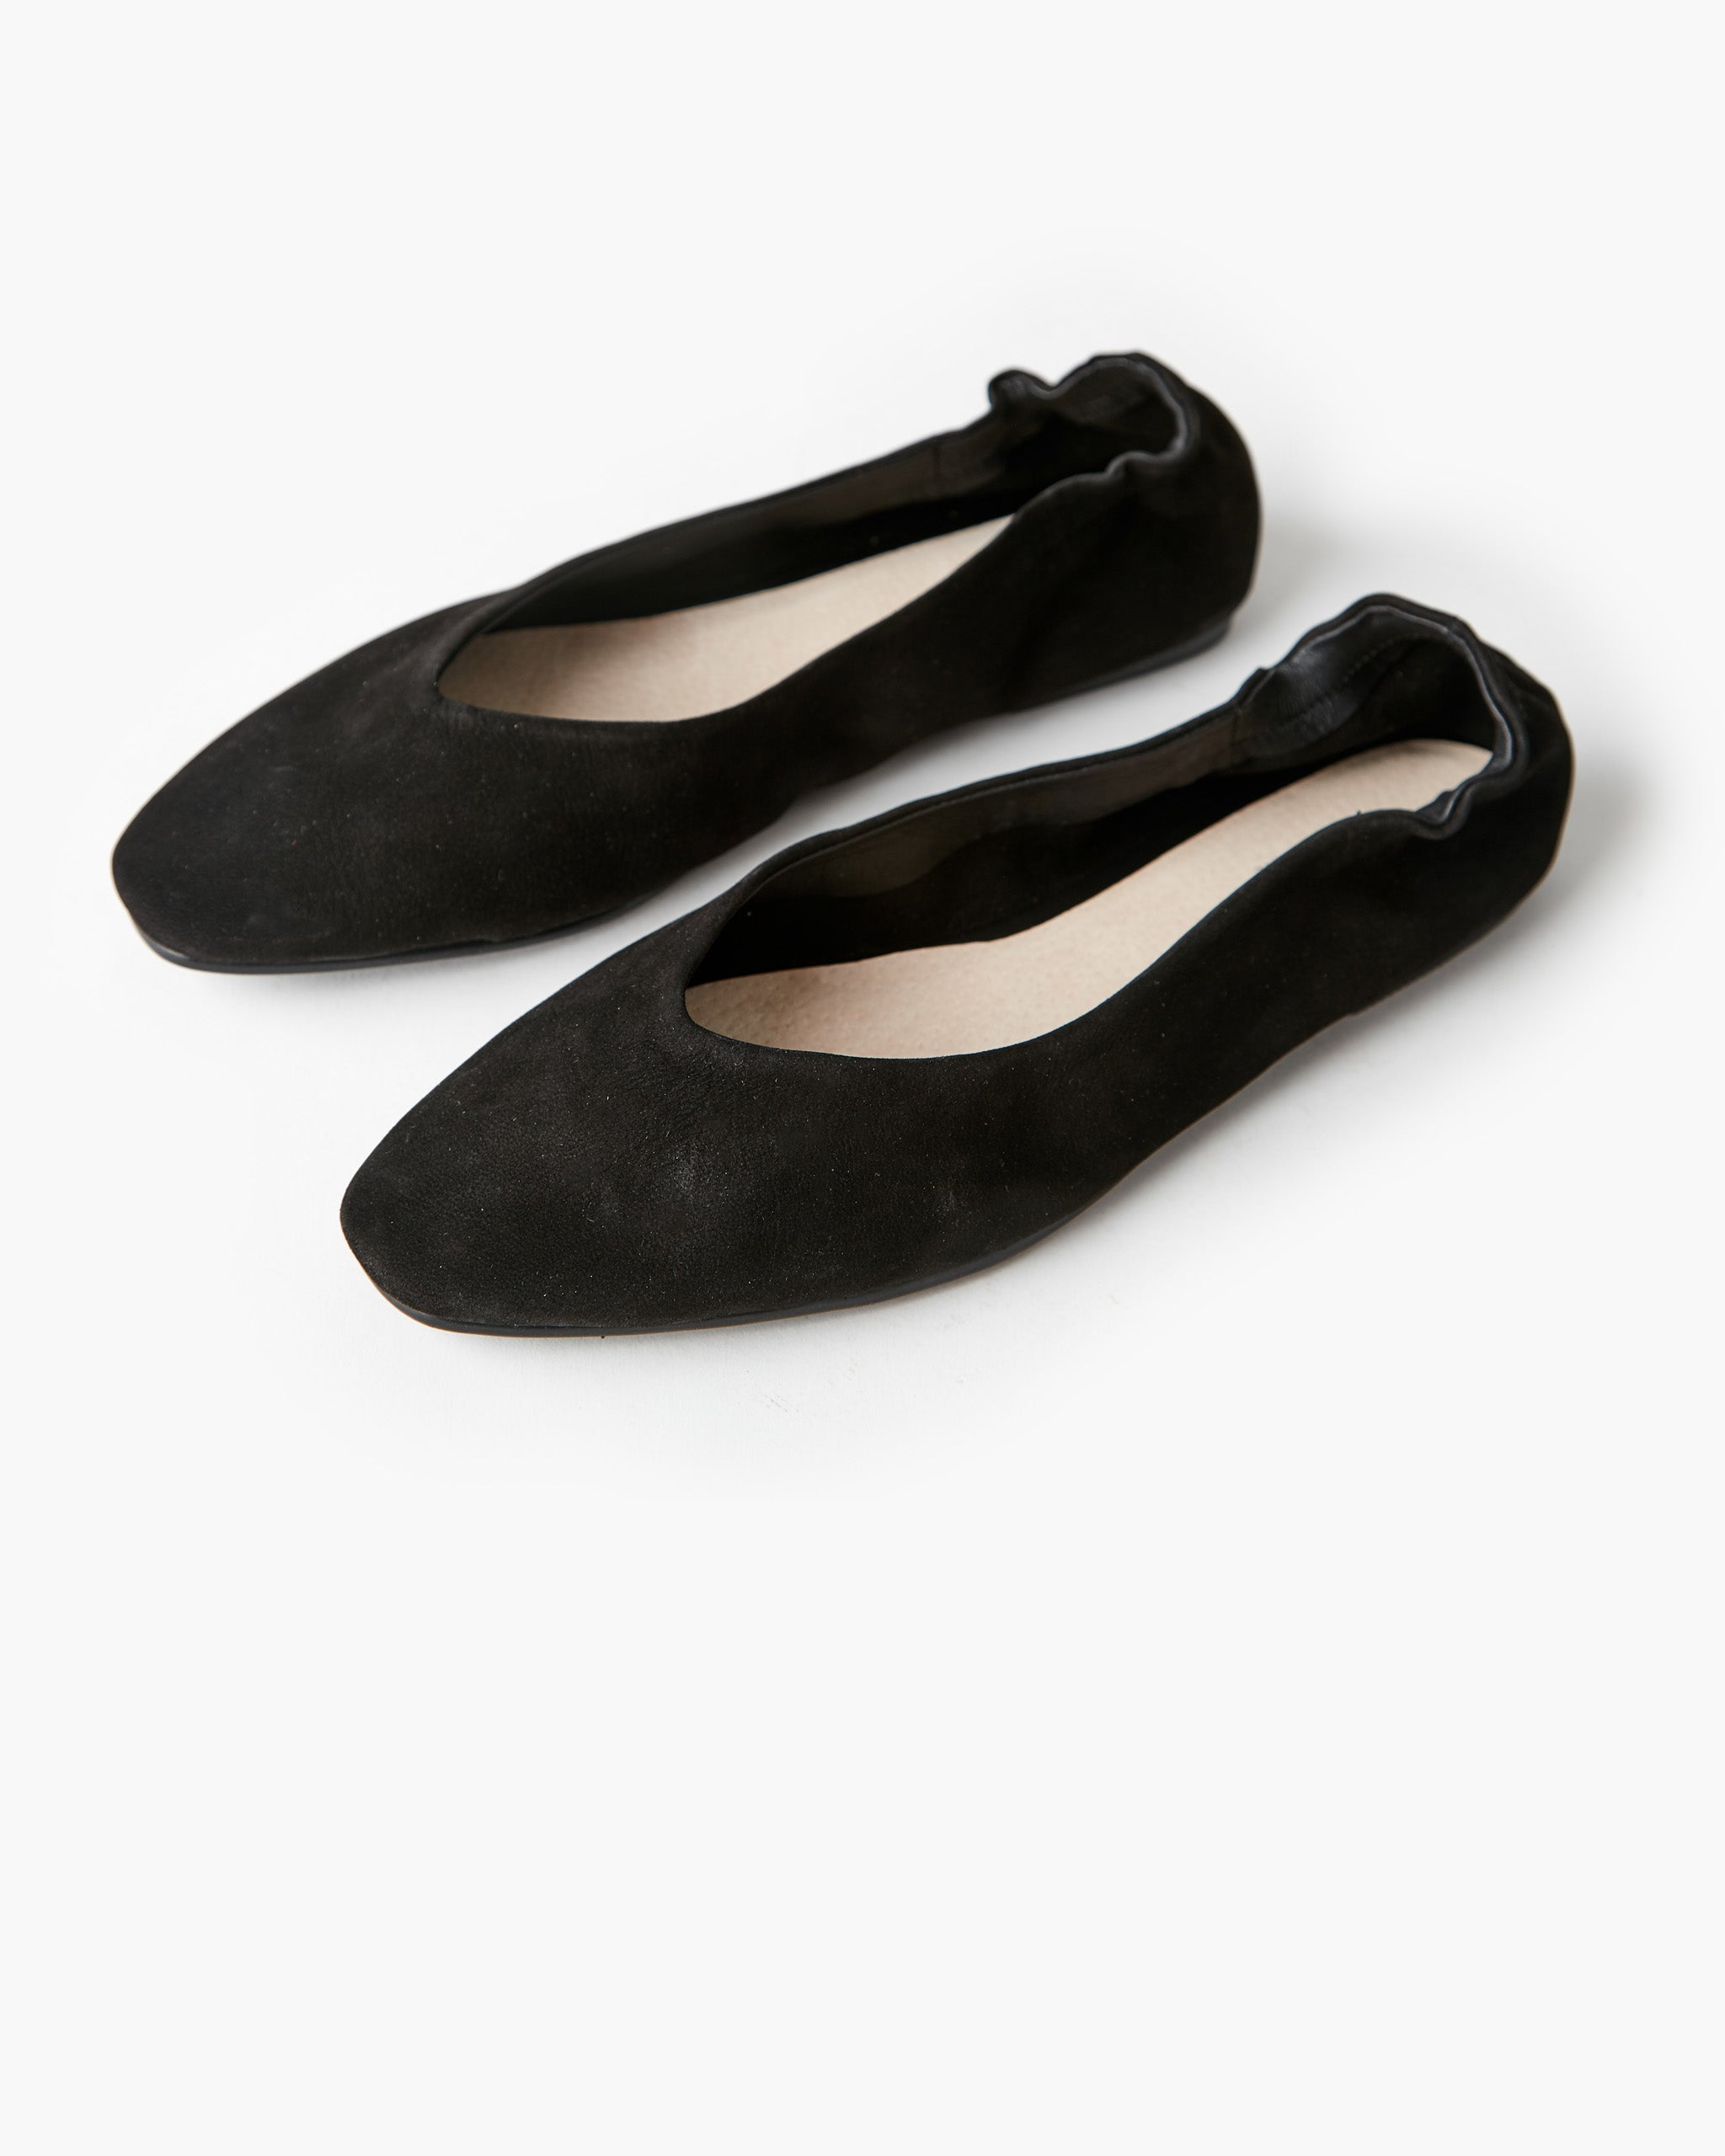 Becca Leather Ballet Flat - Black